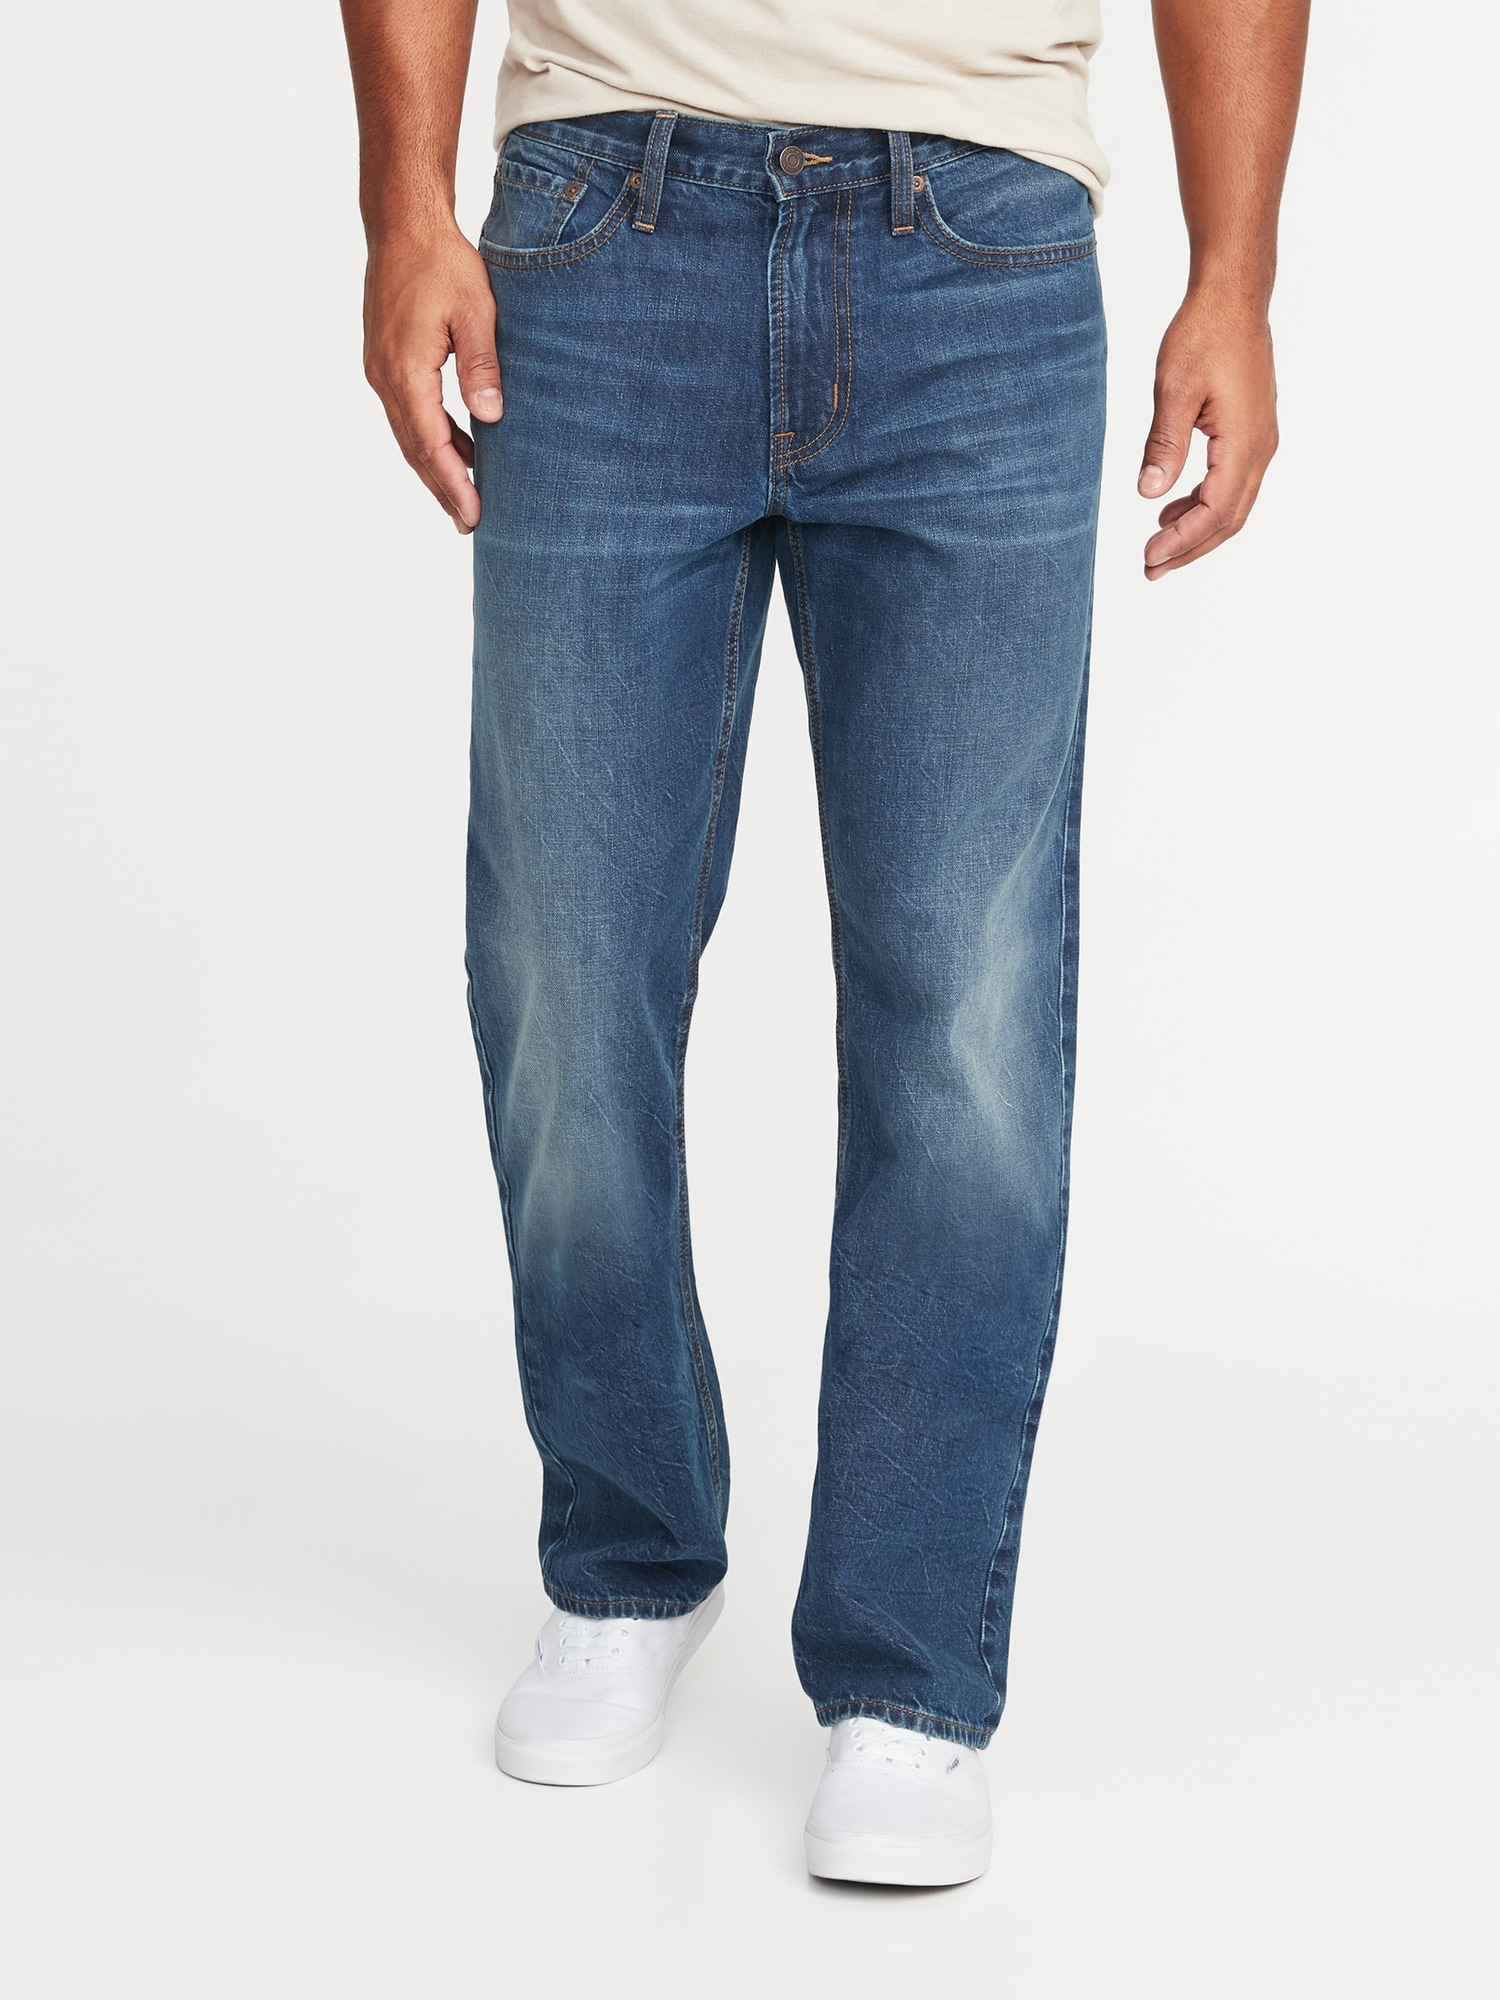 Old Navy Loose Rigid Jeans For Men